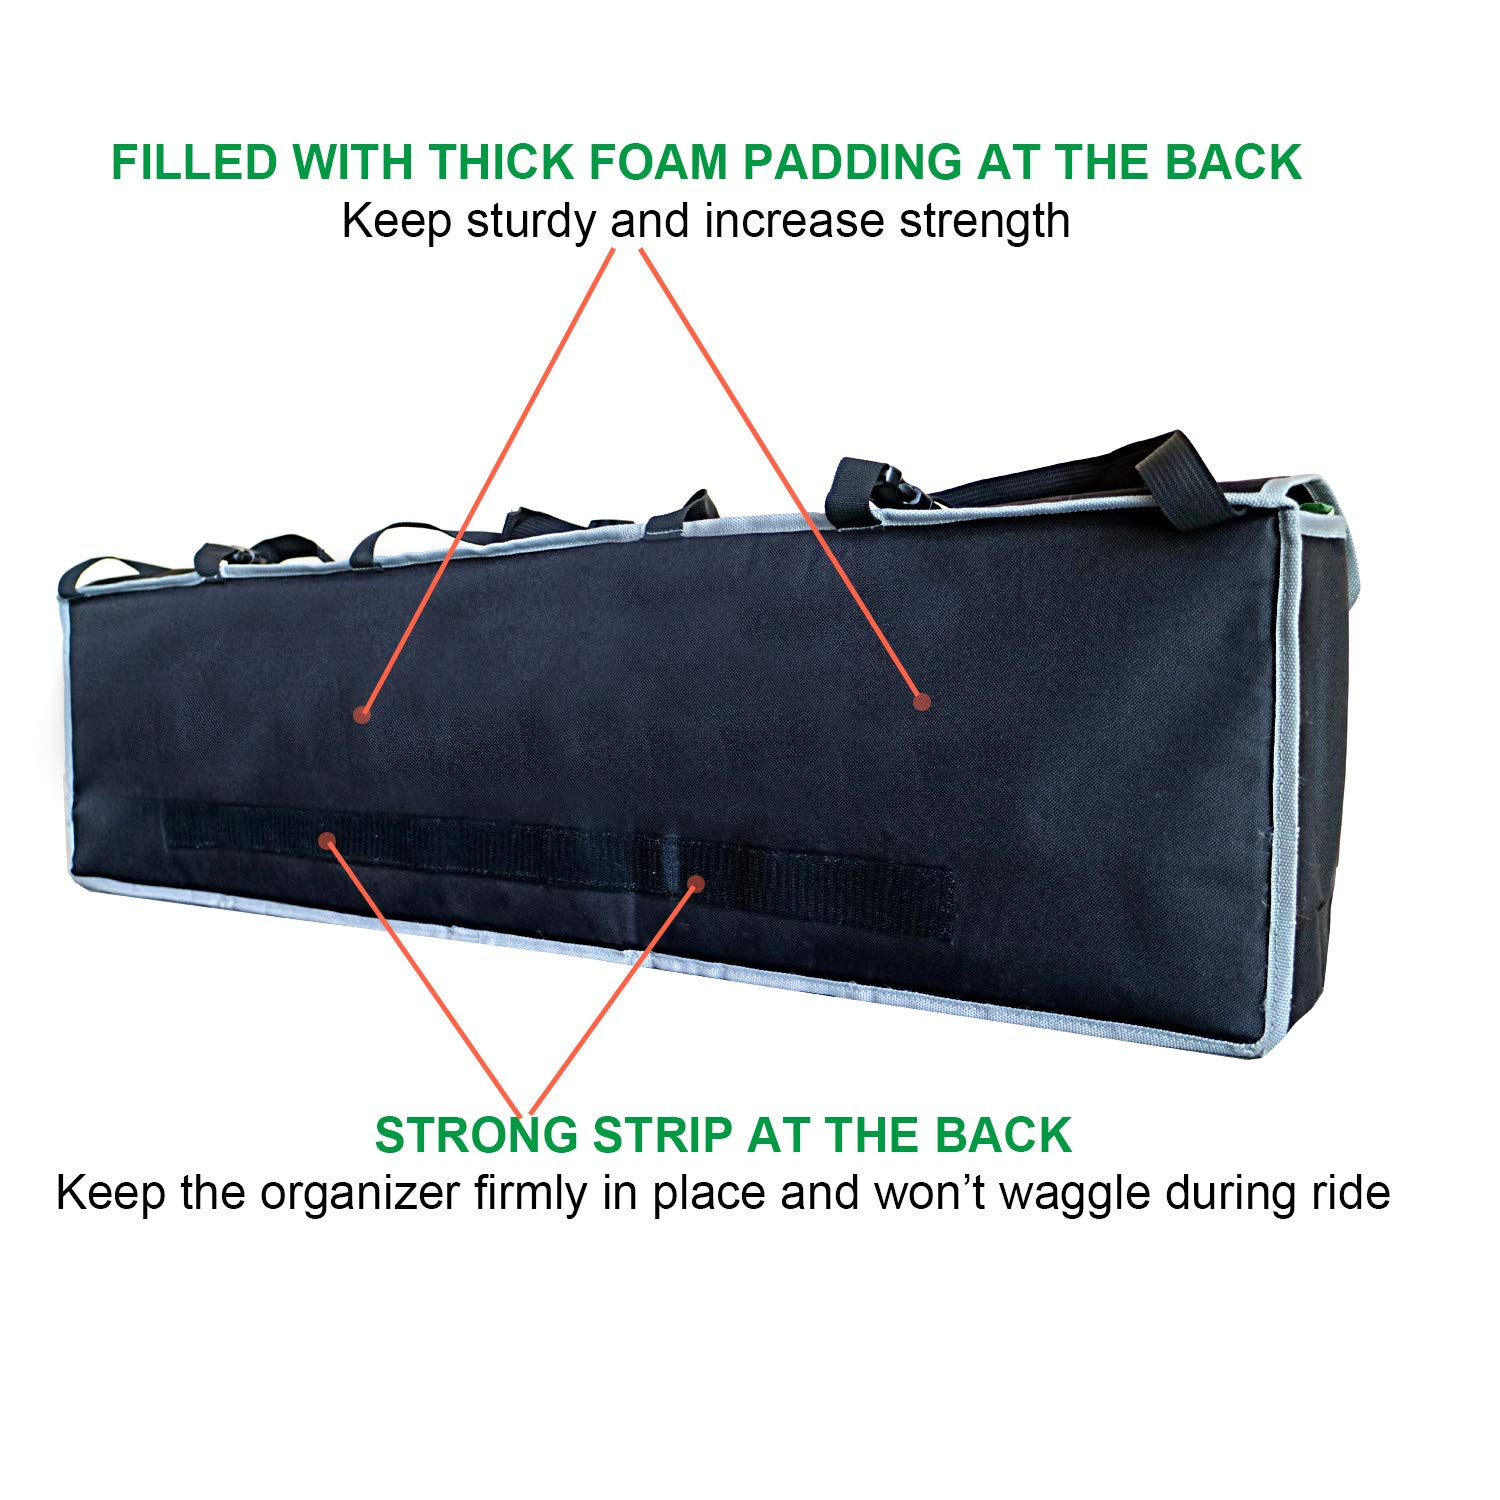 PIDO Backseat Trunk Organizer, Auto Hanging Seat Back Storage Organizer for SUV and Many Vehicles – Free Your Trunk Space by PIDO (Image #5)